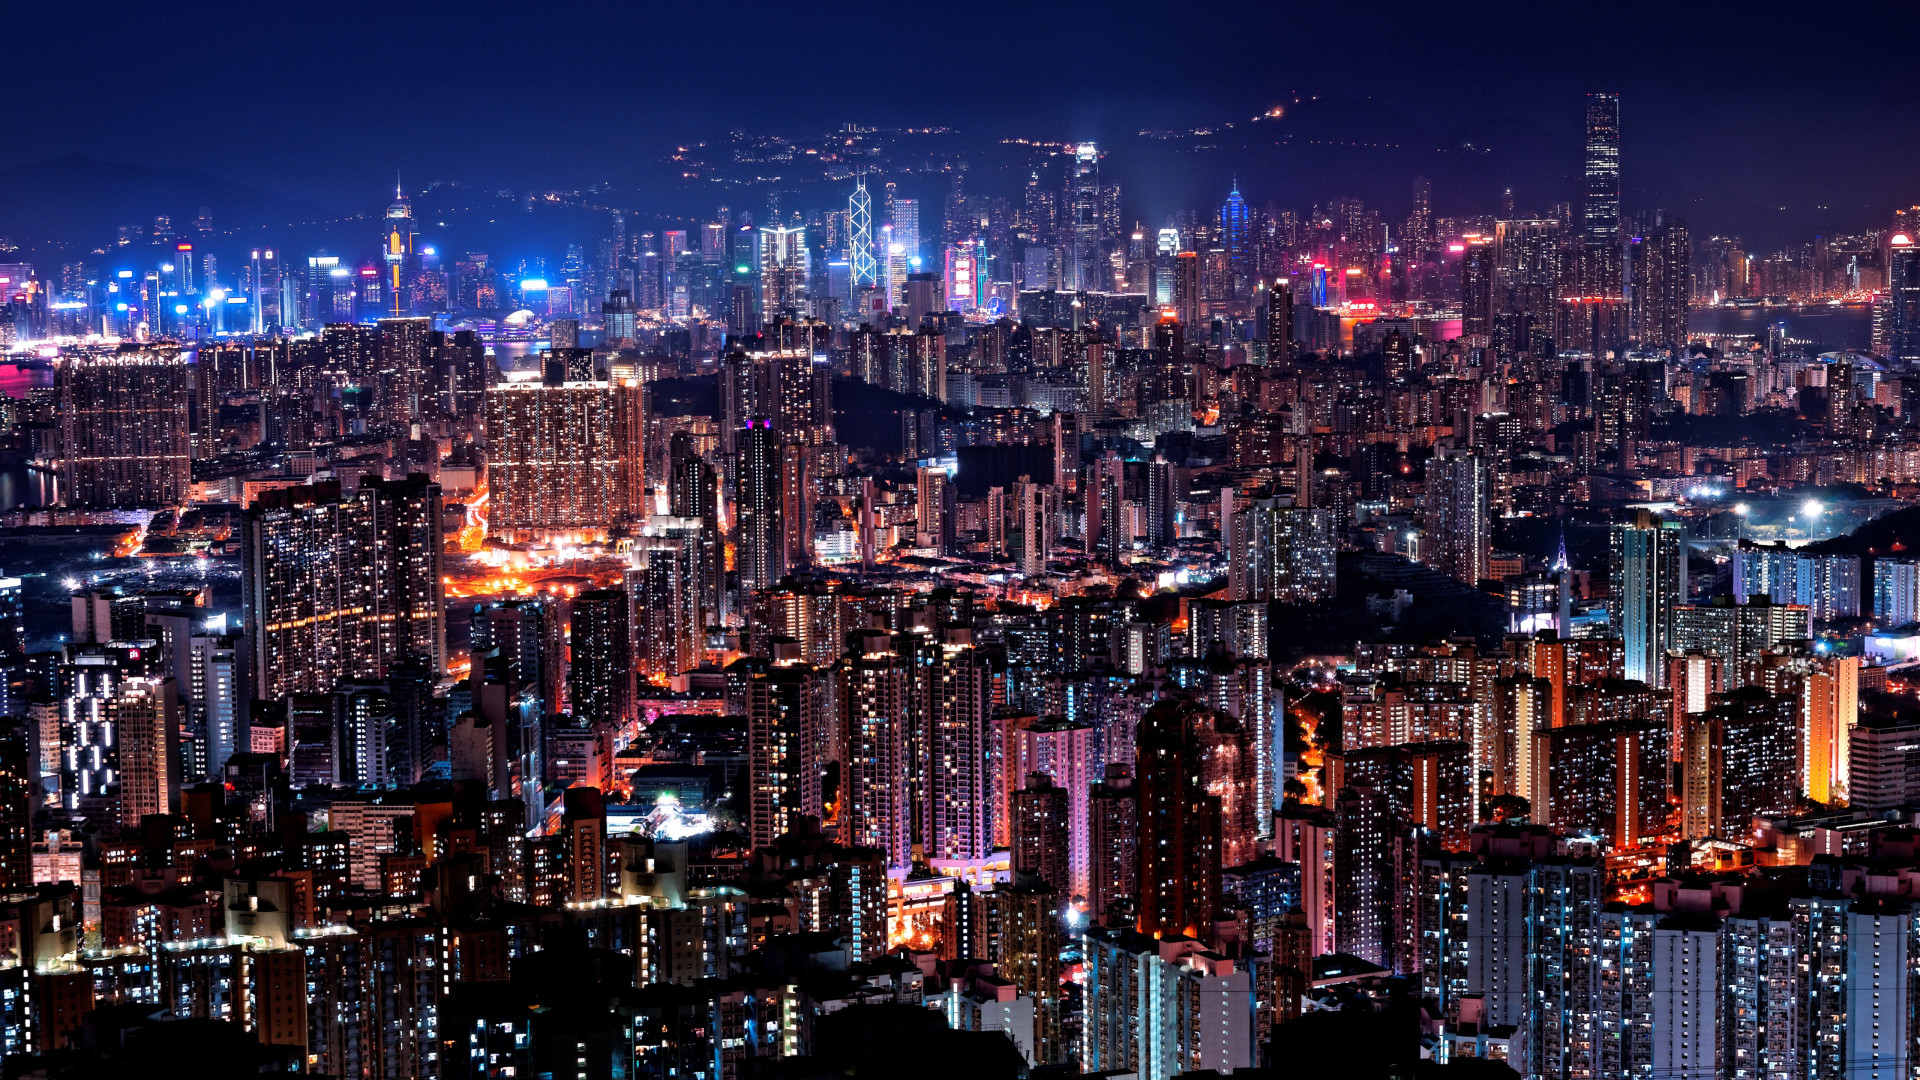 Hong Kong night lights wallpaper 1920x1080